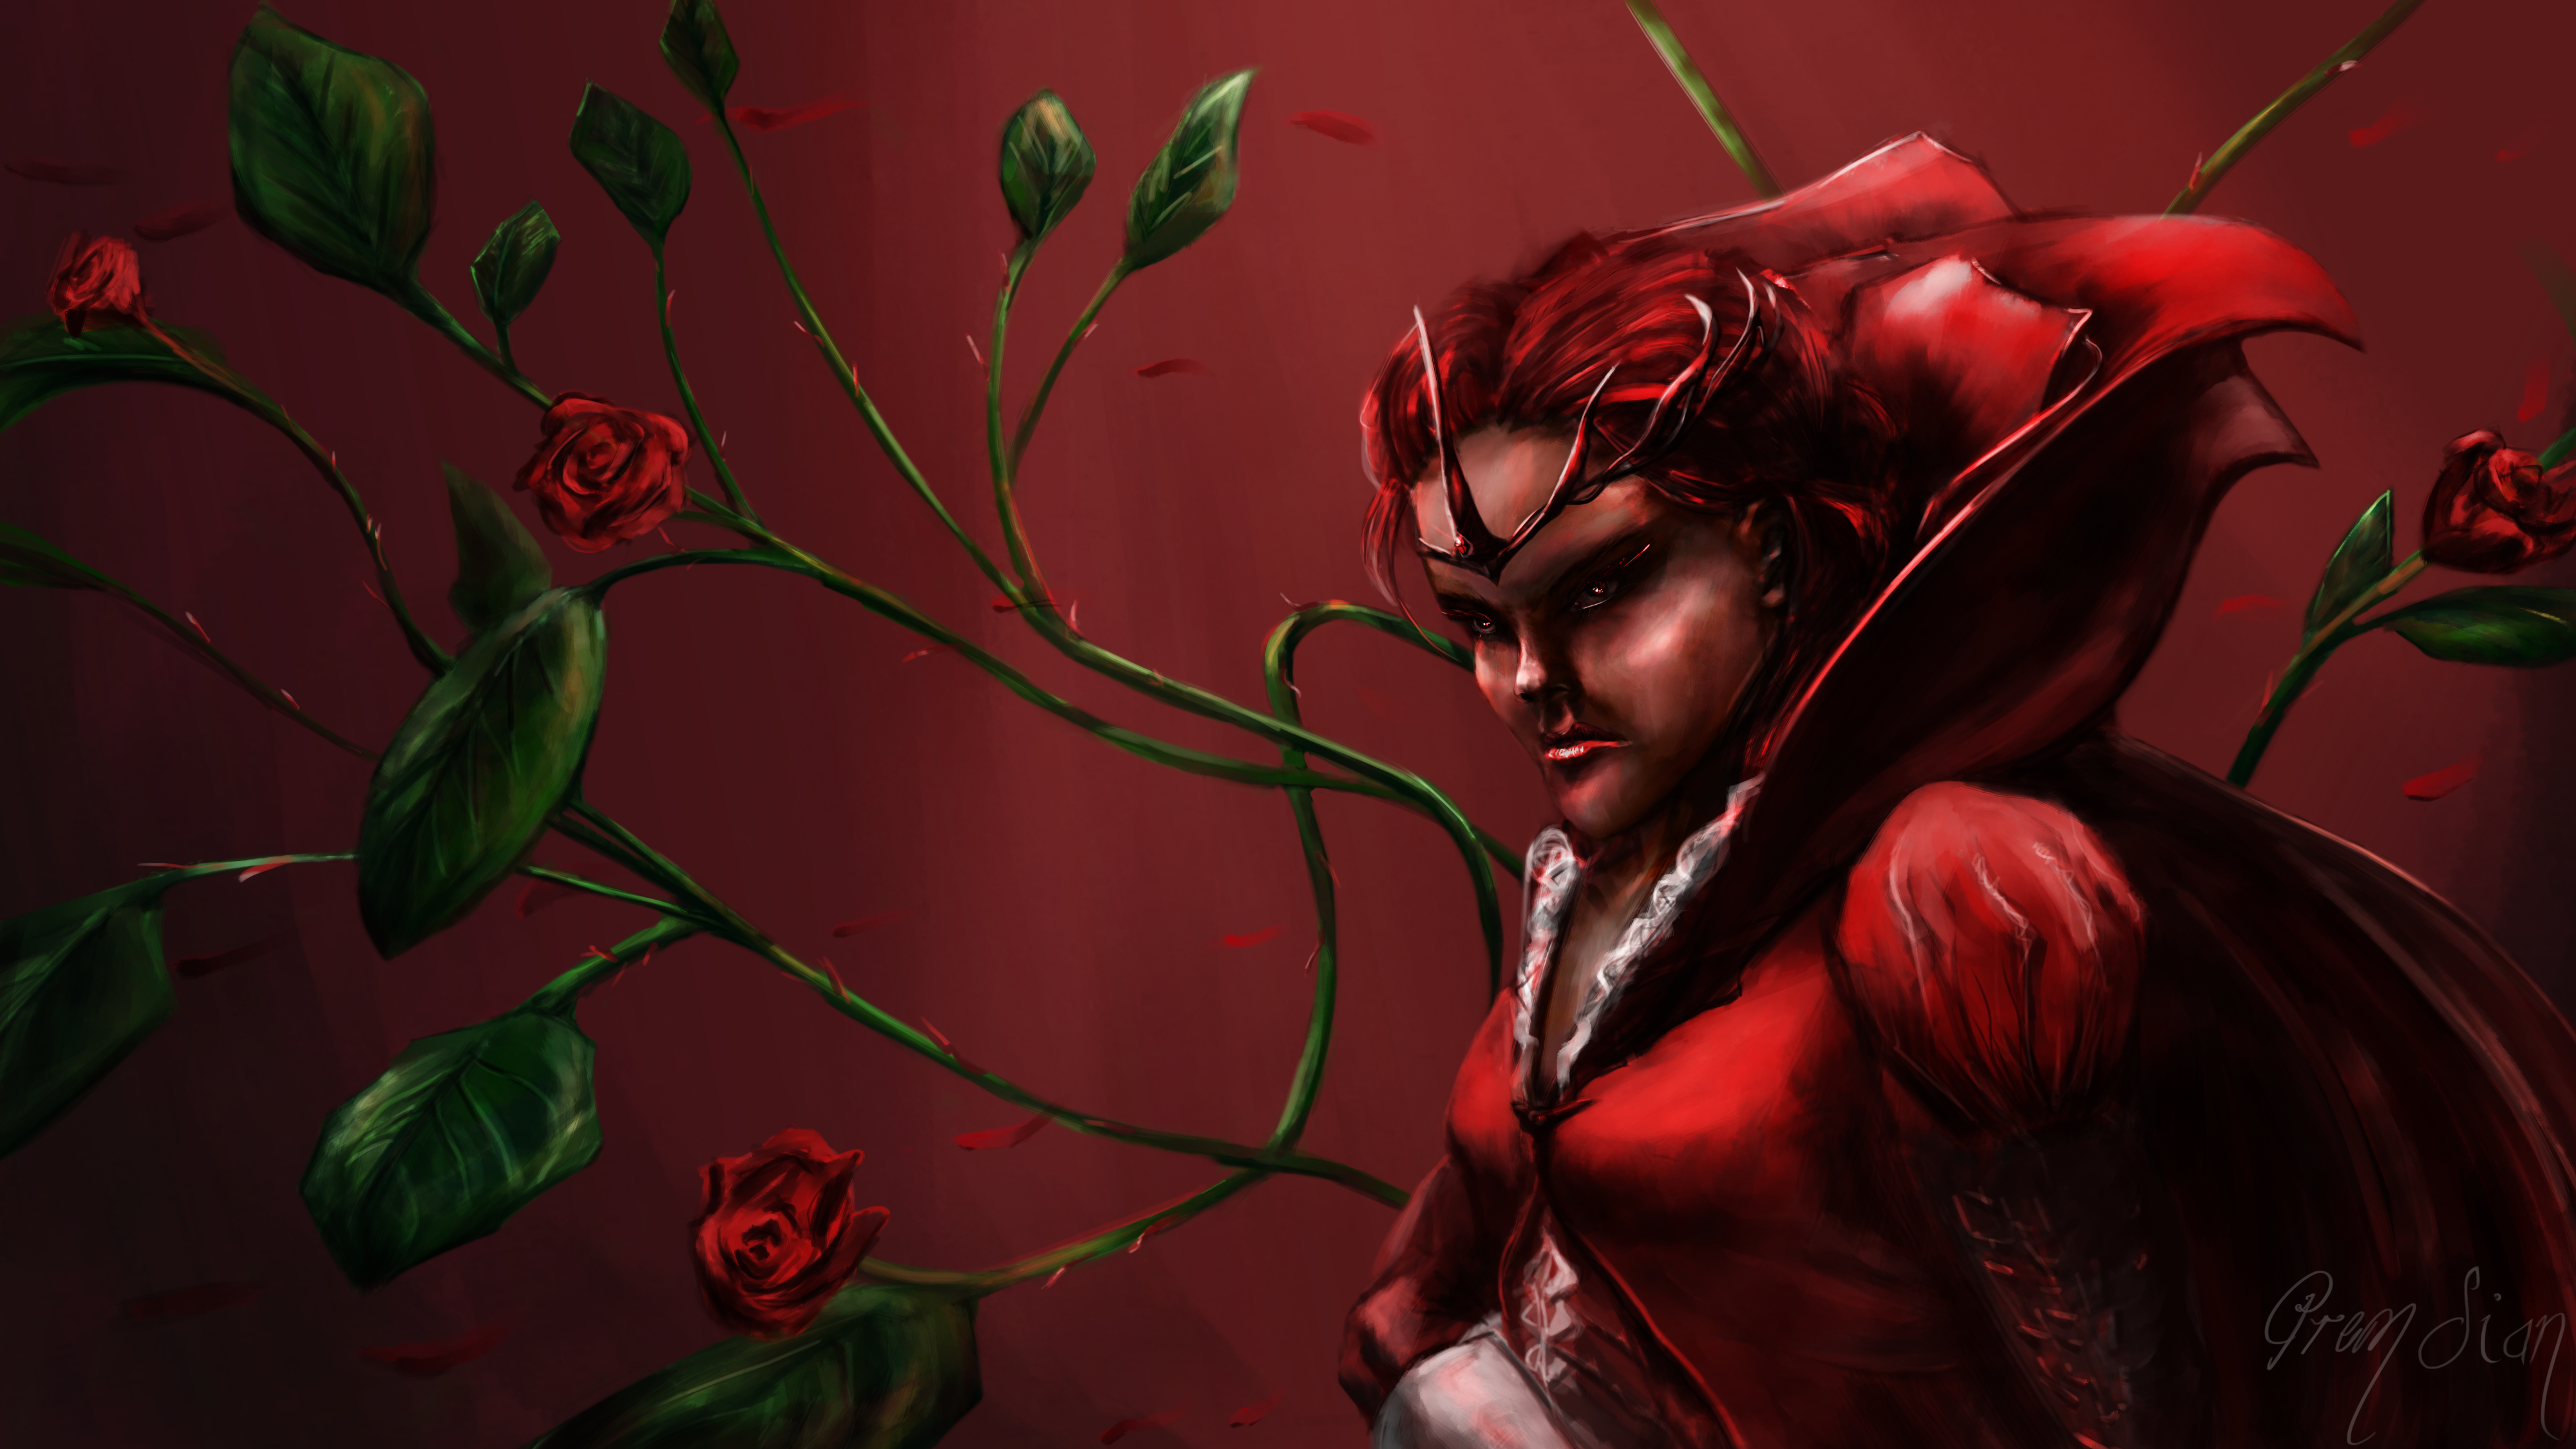 The Blood Red Rose's Thorn